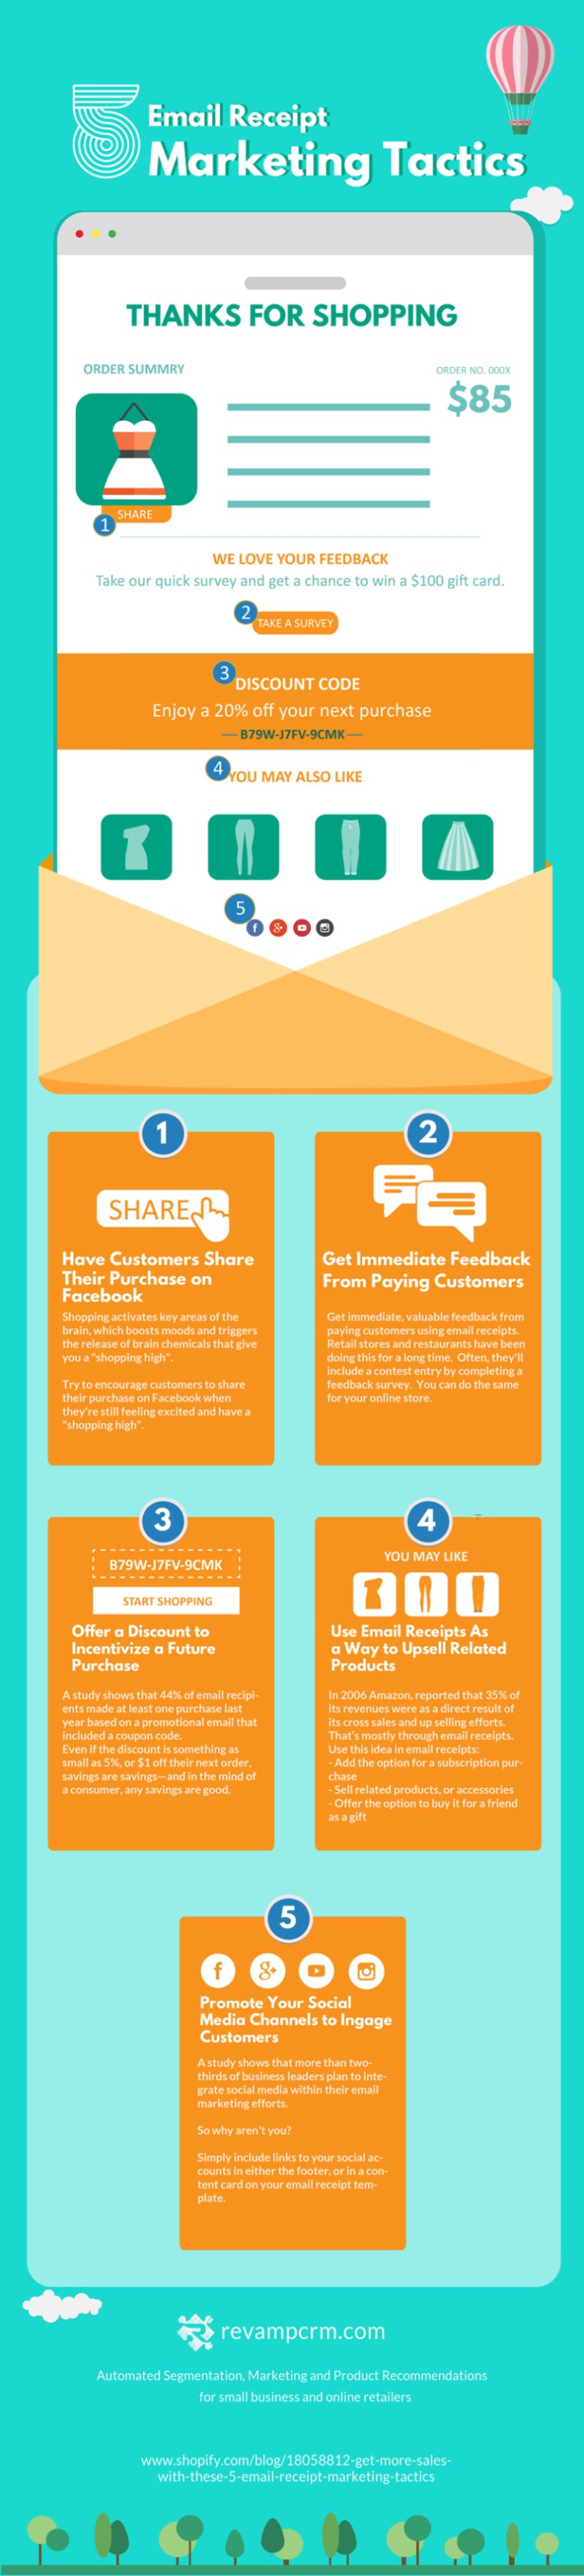 Infographic looks at ways to maximize the promotional potential of eCommerce receipt emails